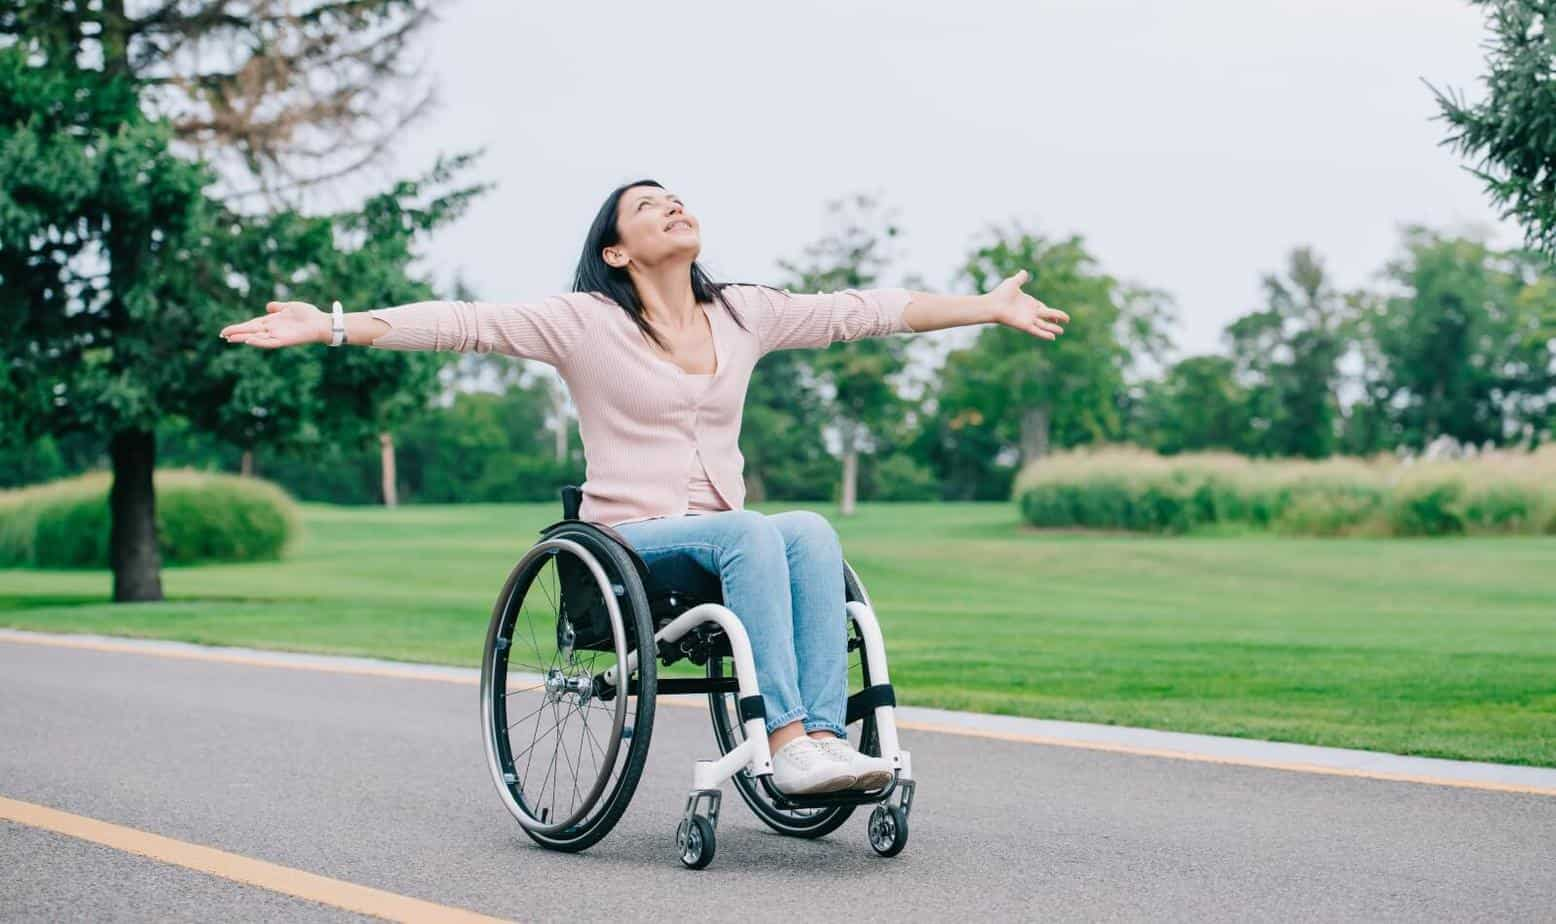 Happy disabled woman in transport wheelchair gesturing while looking at clear sky